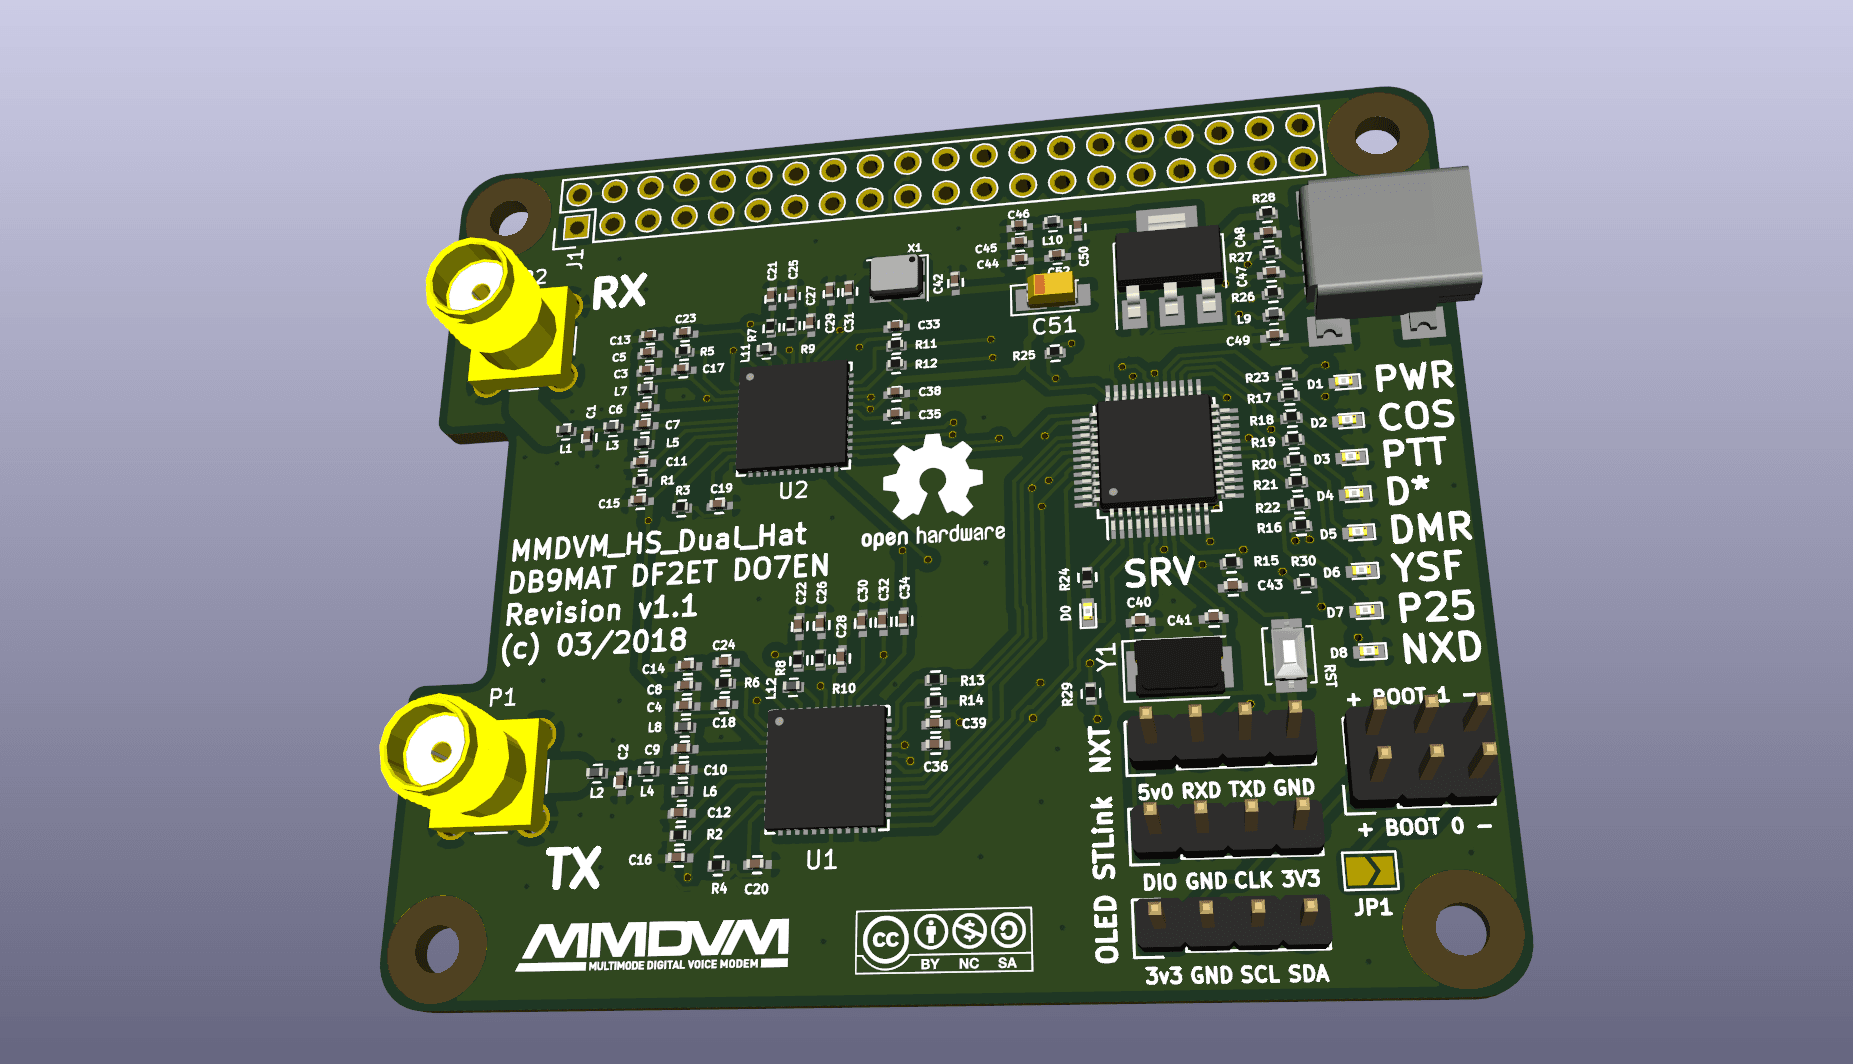 MMDVM_HS_Dual_Hat by DB9MAT, DF2ET and DO7EN, Quelle: https://github.com/phl0/MMDVM_HS_Dual_Hat